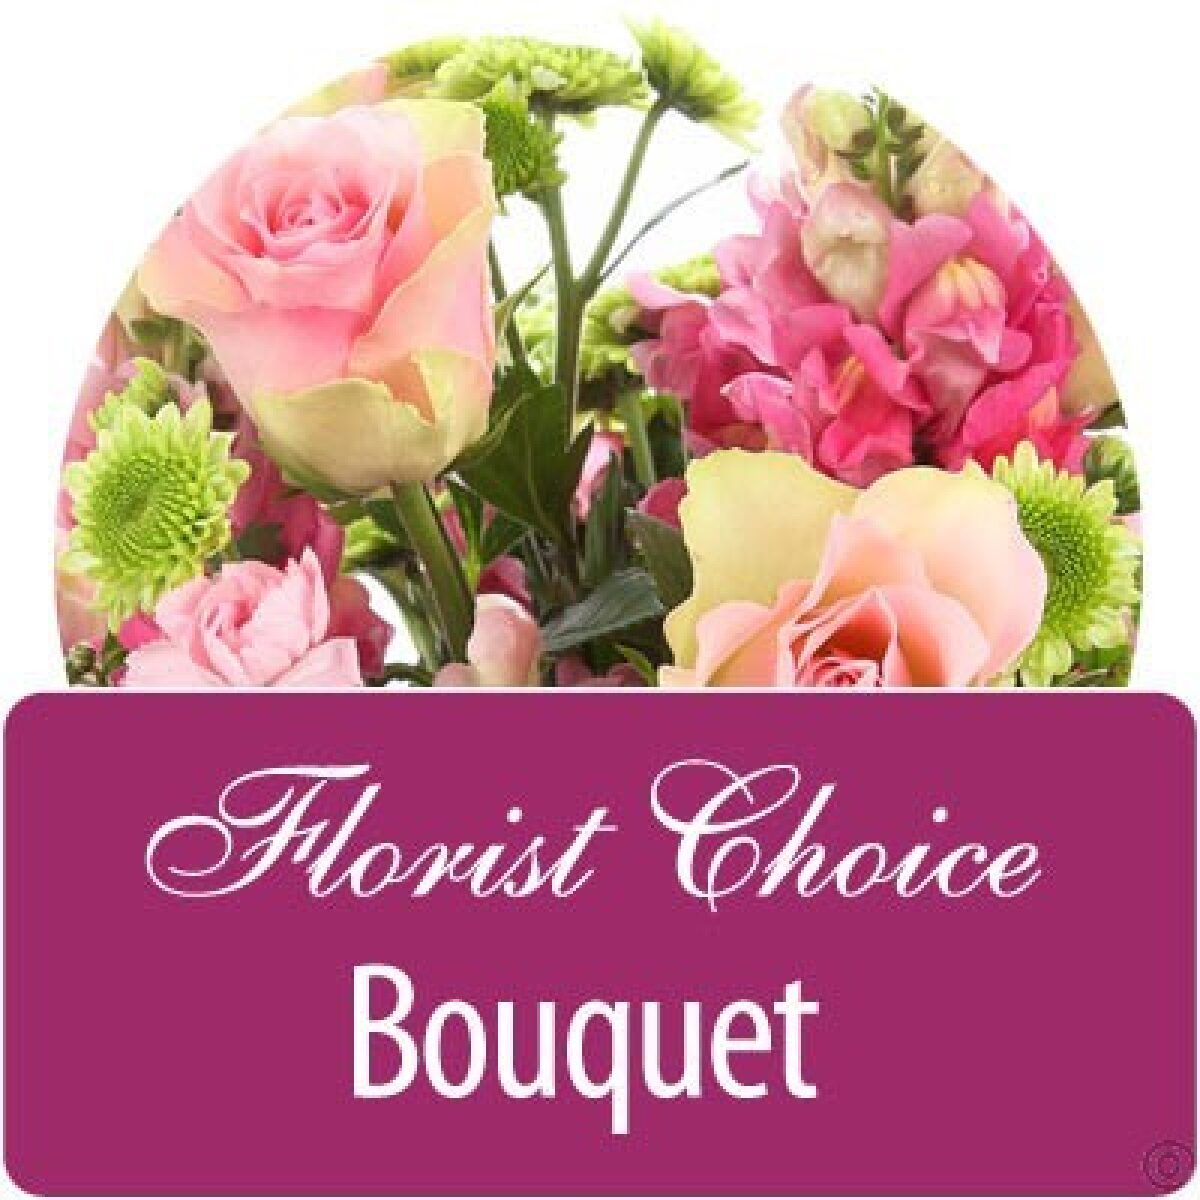 florist choice bouquet one